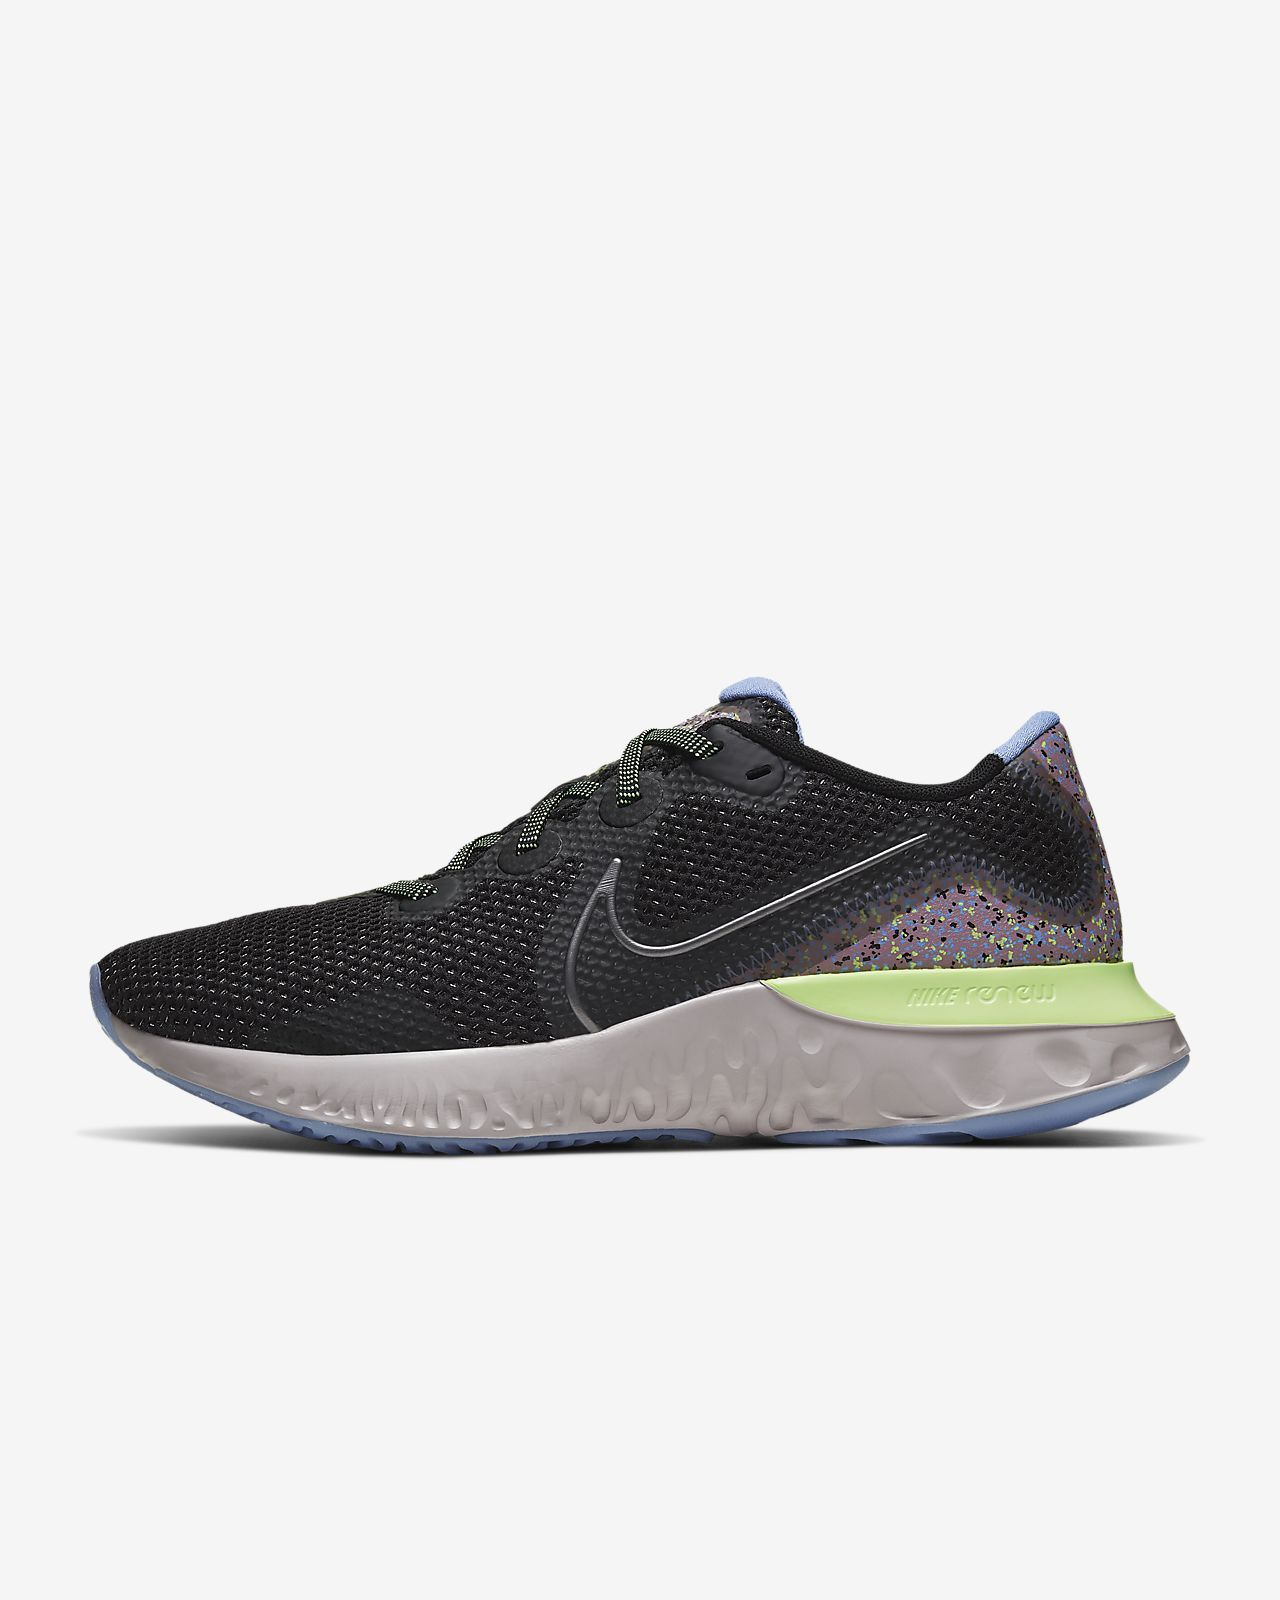 Nike Renew Run Special Edition Women's Running Shoe